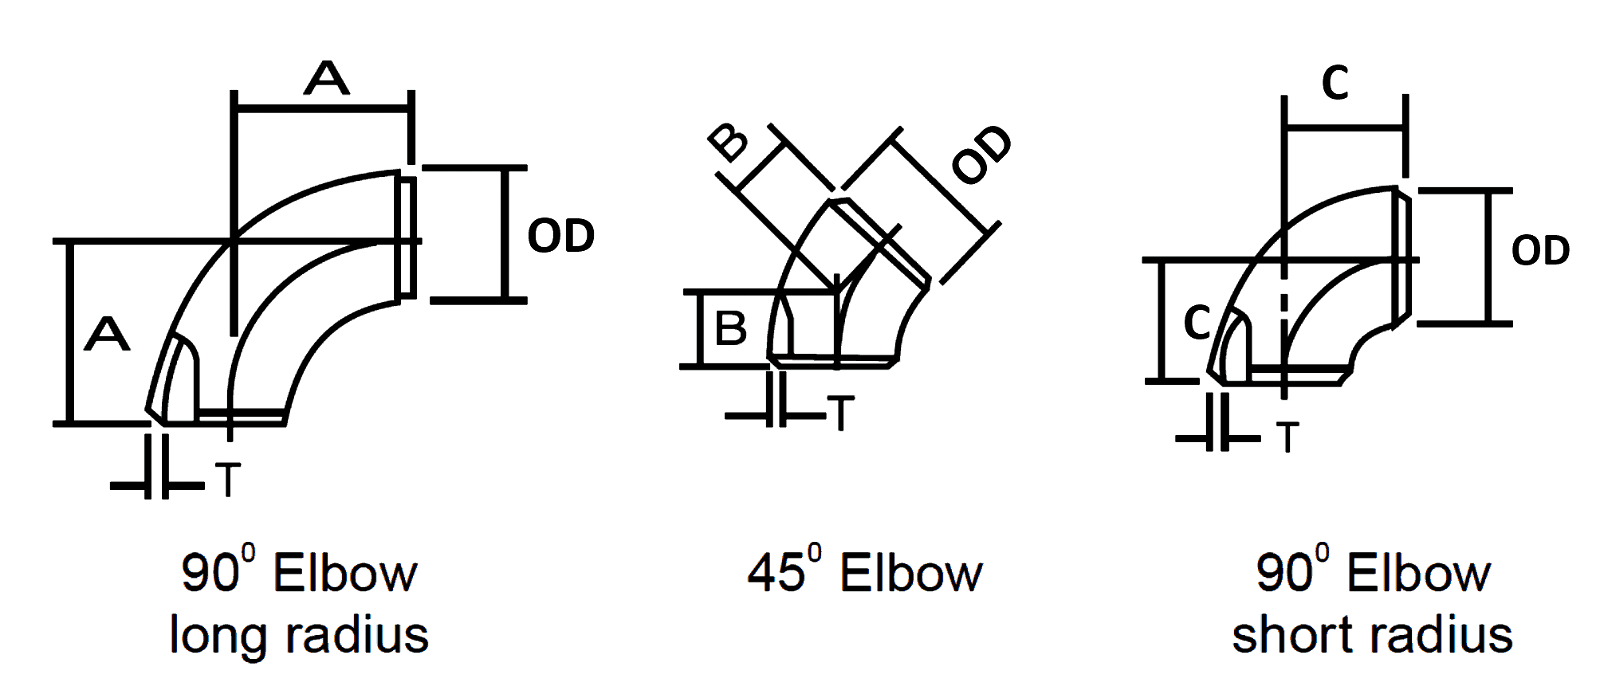 long radius elbow dimensions